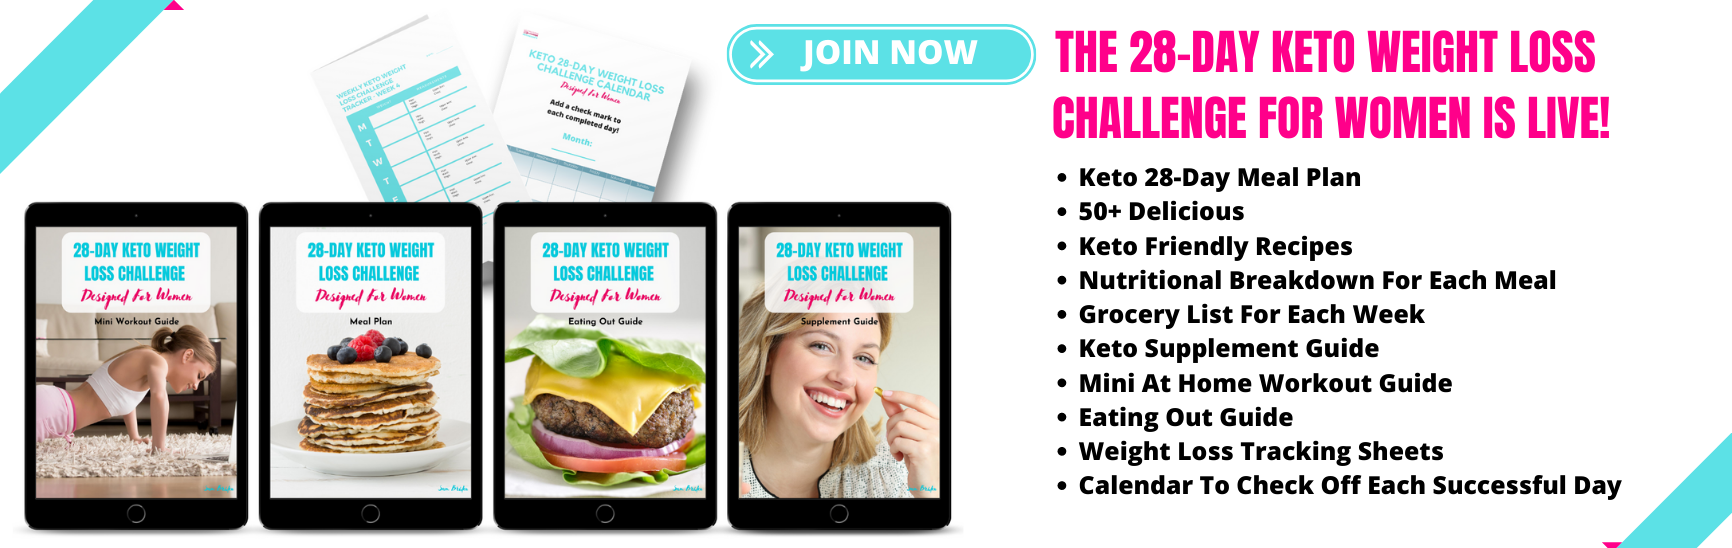 THE 28 DAY KETO WEIGHT LOSS CHALLENGE FOR WOMEN IS LIVE!